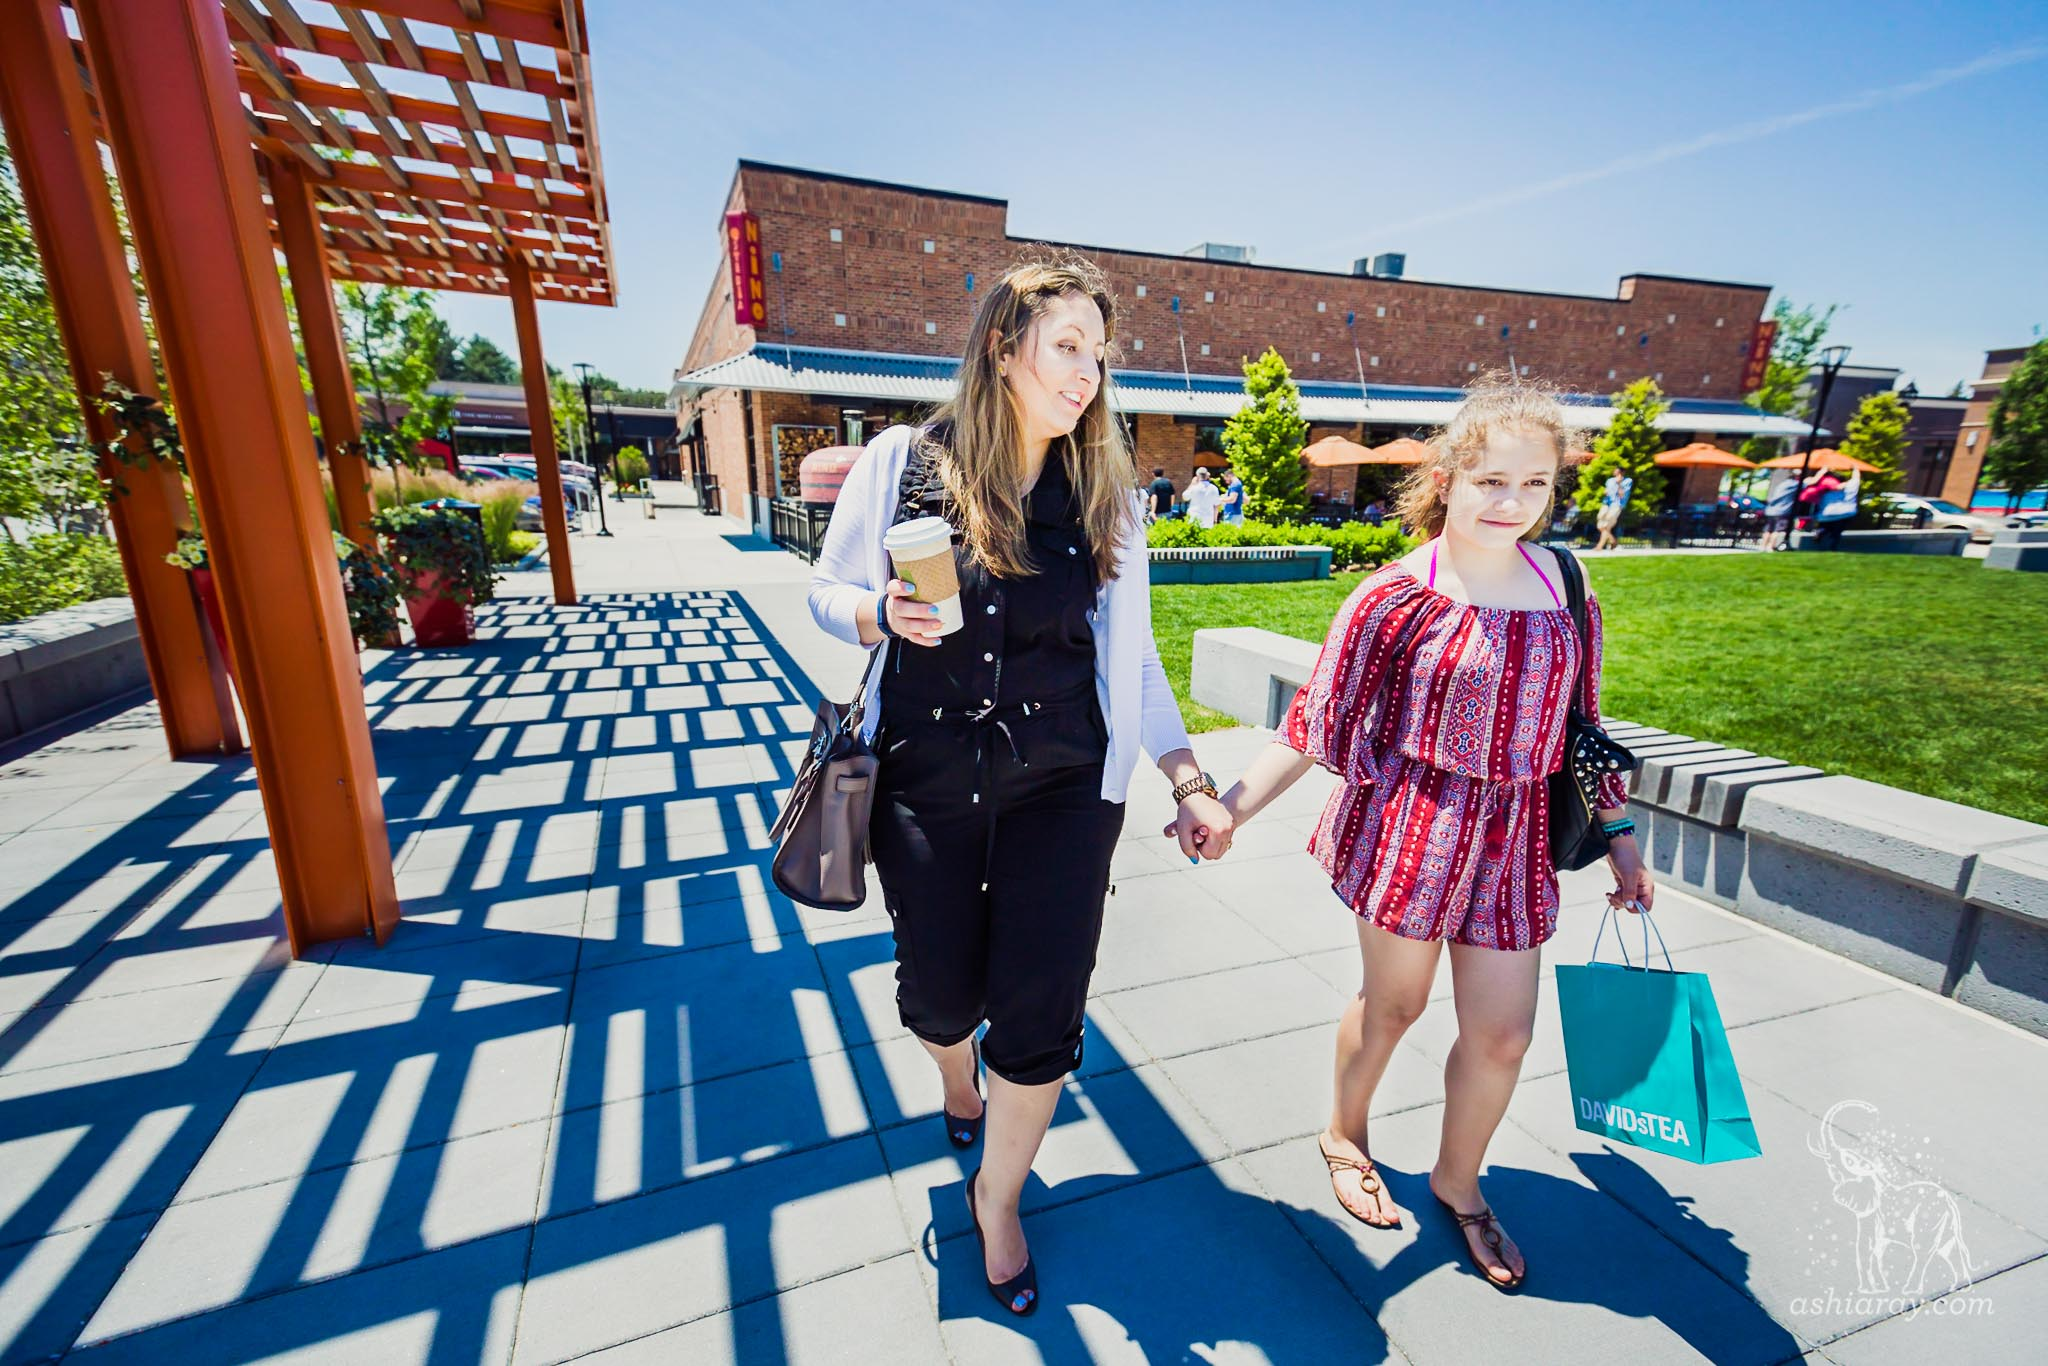 Mother and daughter walk in outdoor mall beside pergola shade